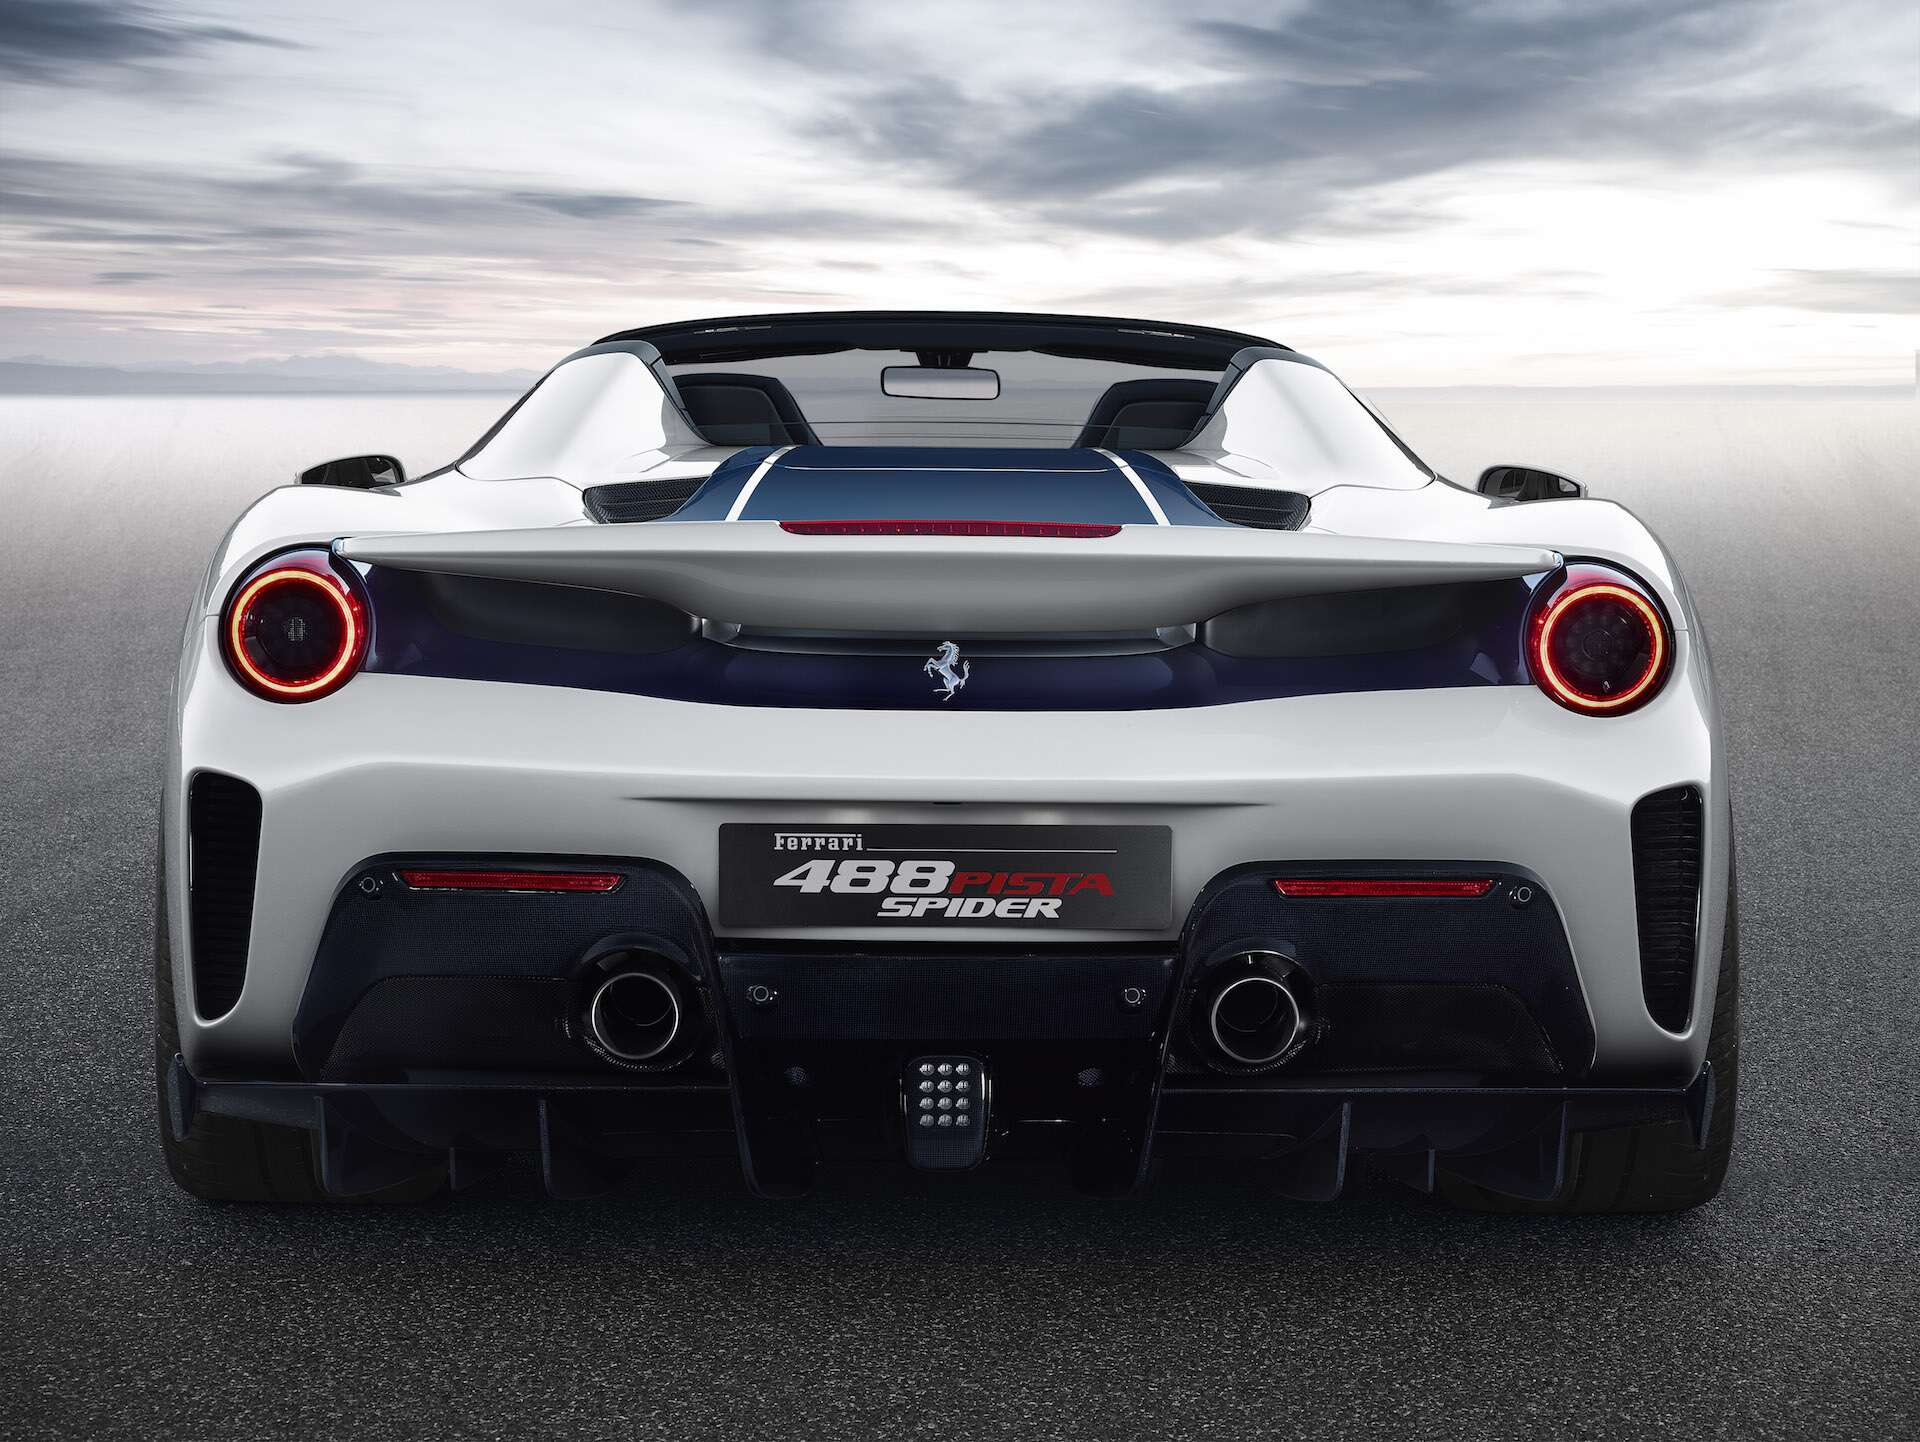 2019 Ferrari 488 Pista Spider Surprises At Pebble Beach The Drive